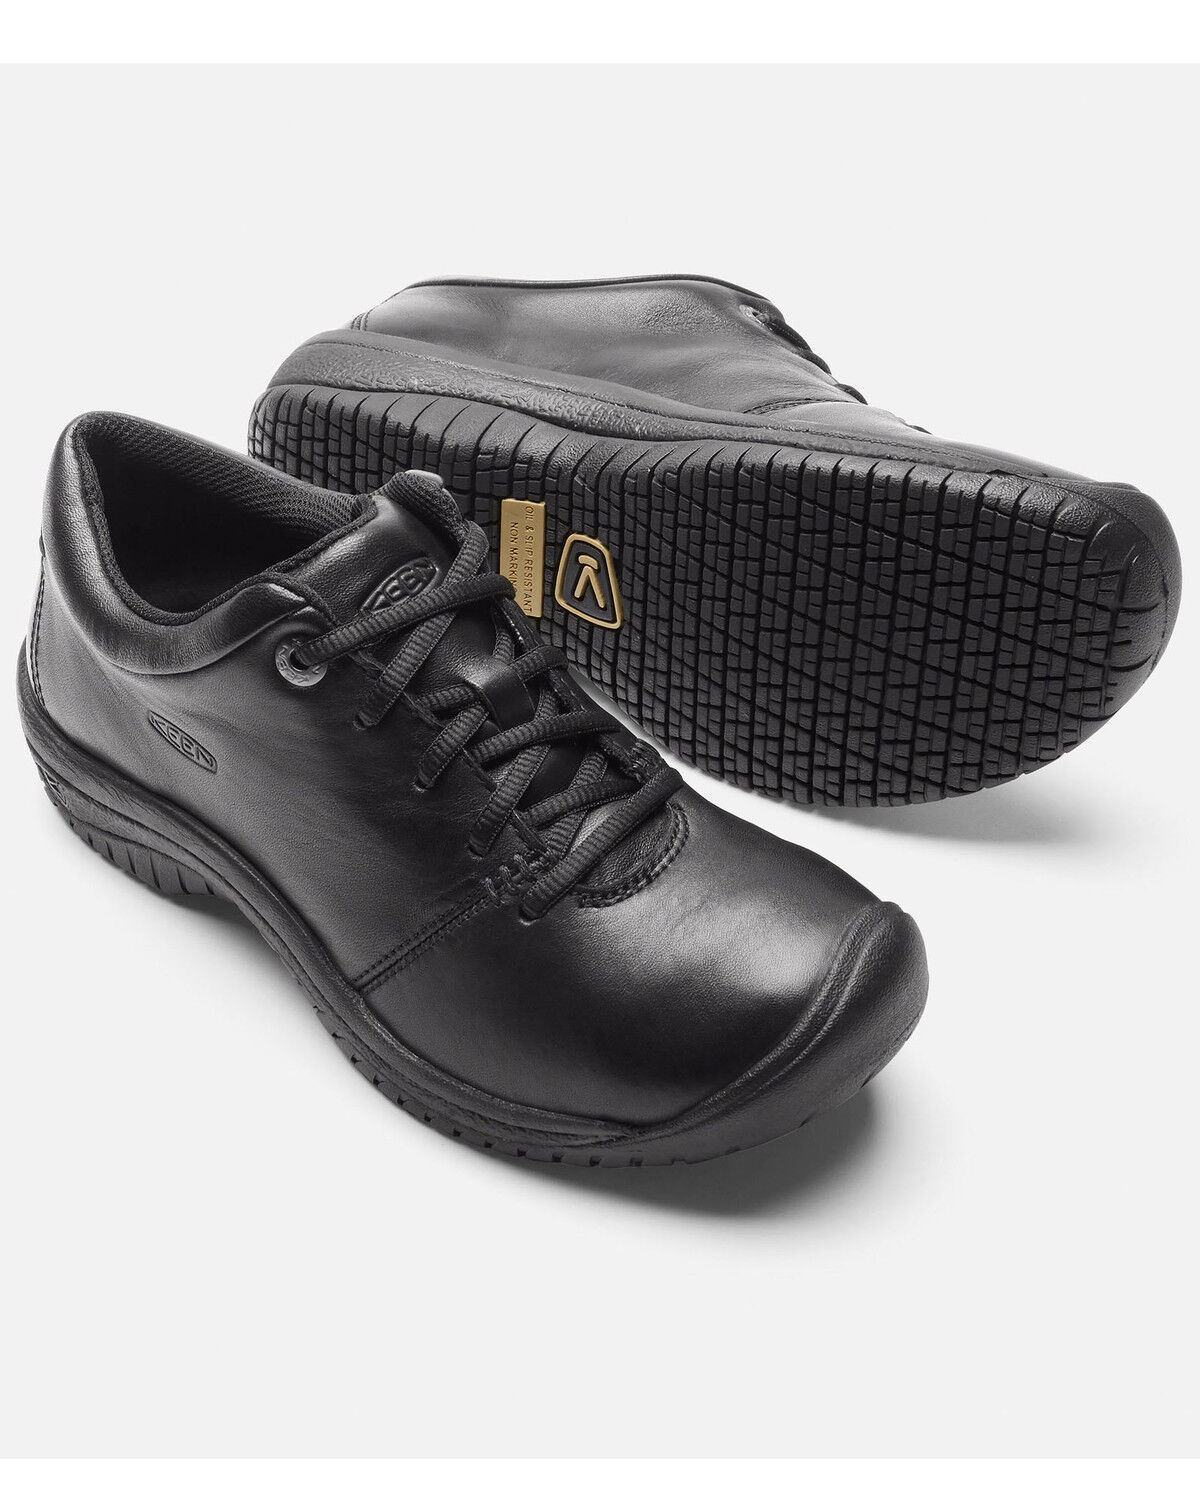 PTC Oxford Work Shoes - Round Toe